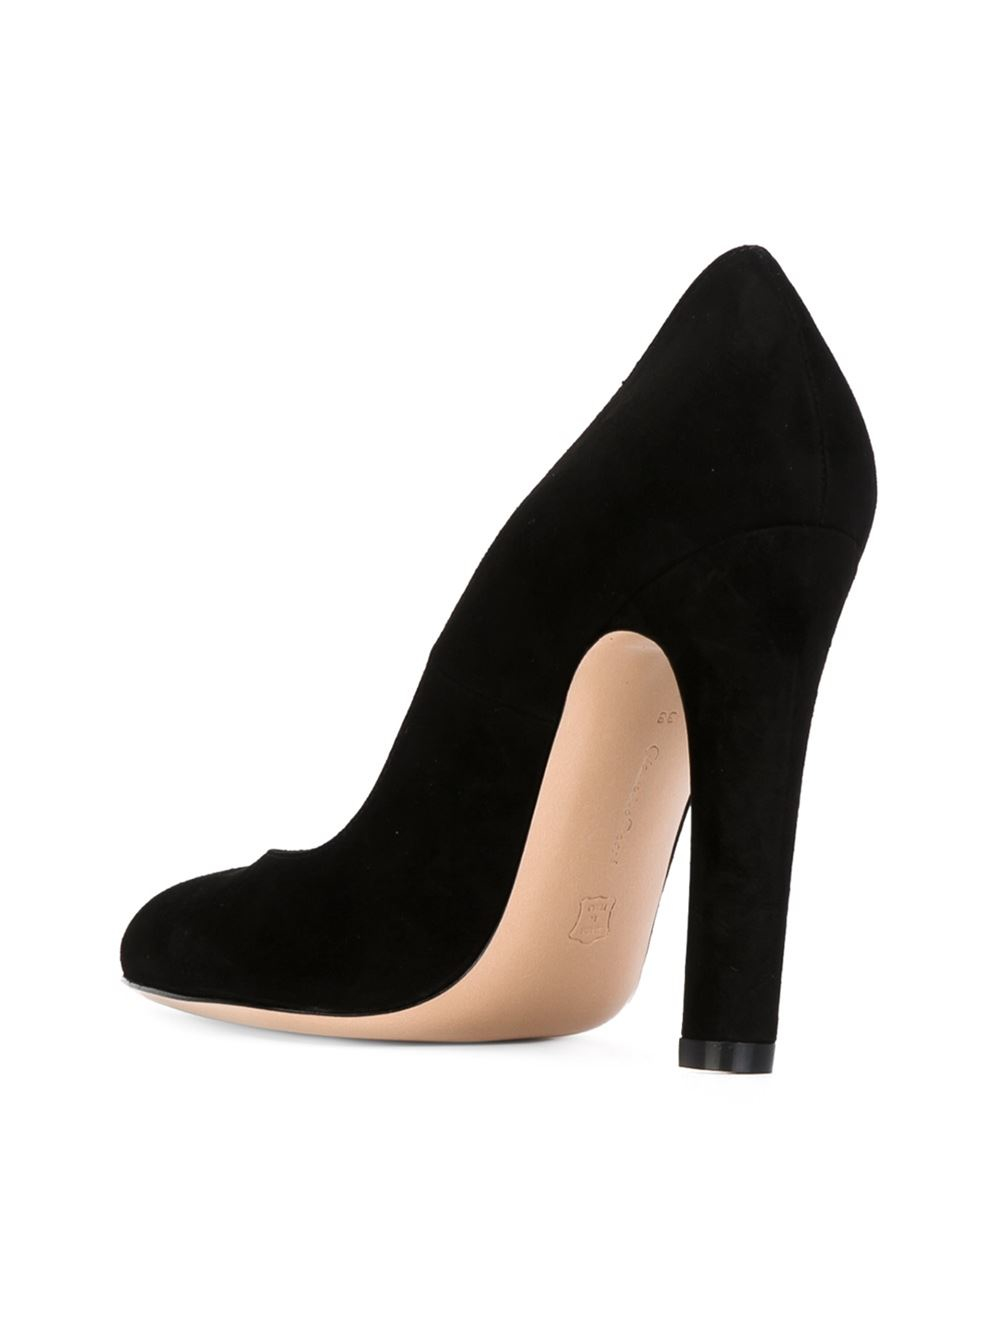 Shop womens chunky heel pumps cheap sale online, you can buy black chunky heel pumps, chunky heel platform pumps, chunky heel pointed toe pumps for women and more at wholesale prices on dexterminduwi.ga FREE shipping available worldwide.